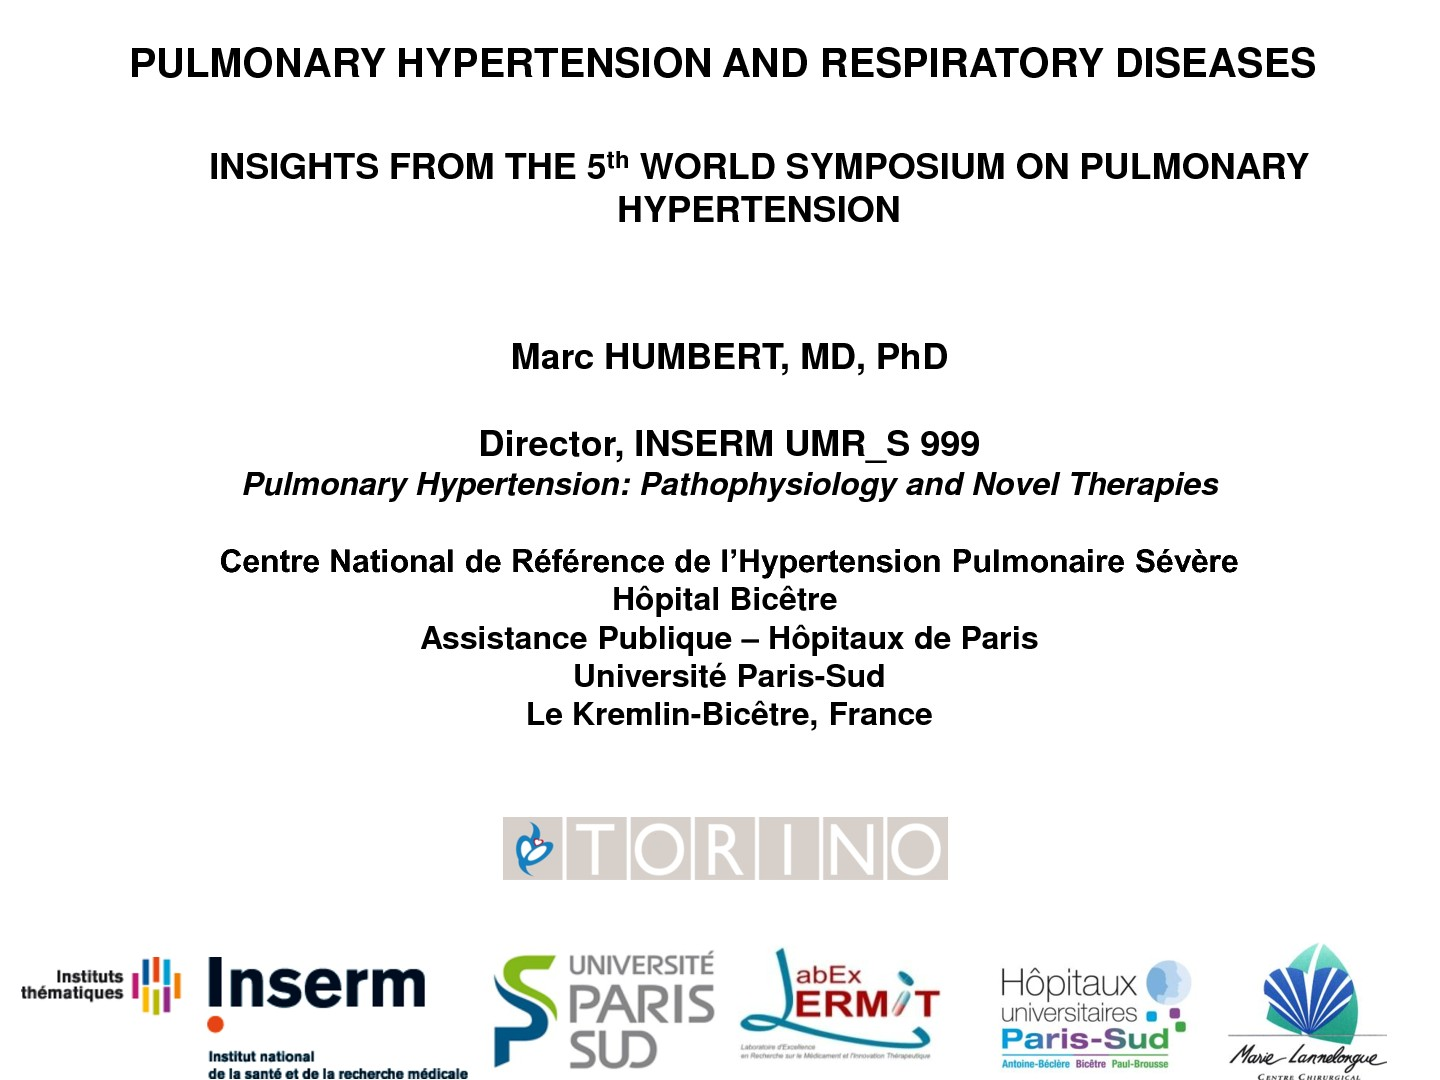 Pulmonary hypertension and respiratory diseases. Marc Humbert